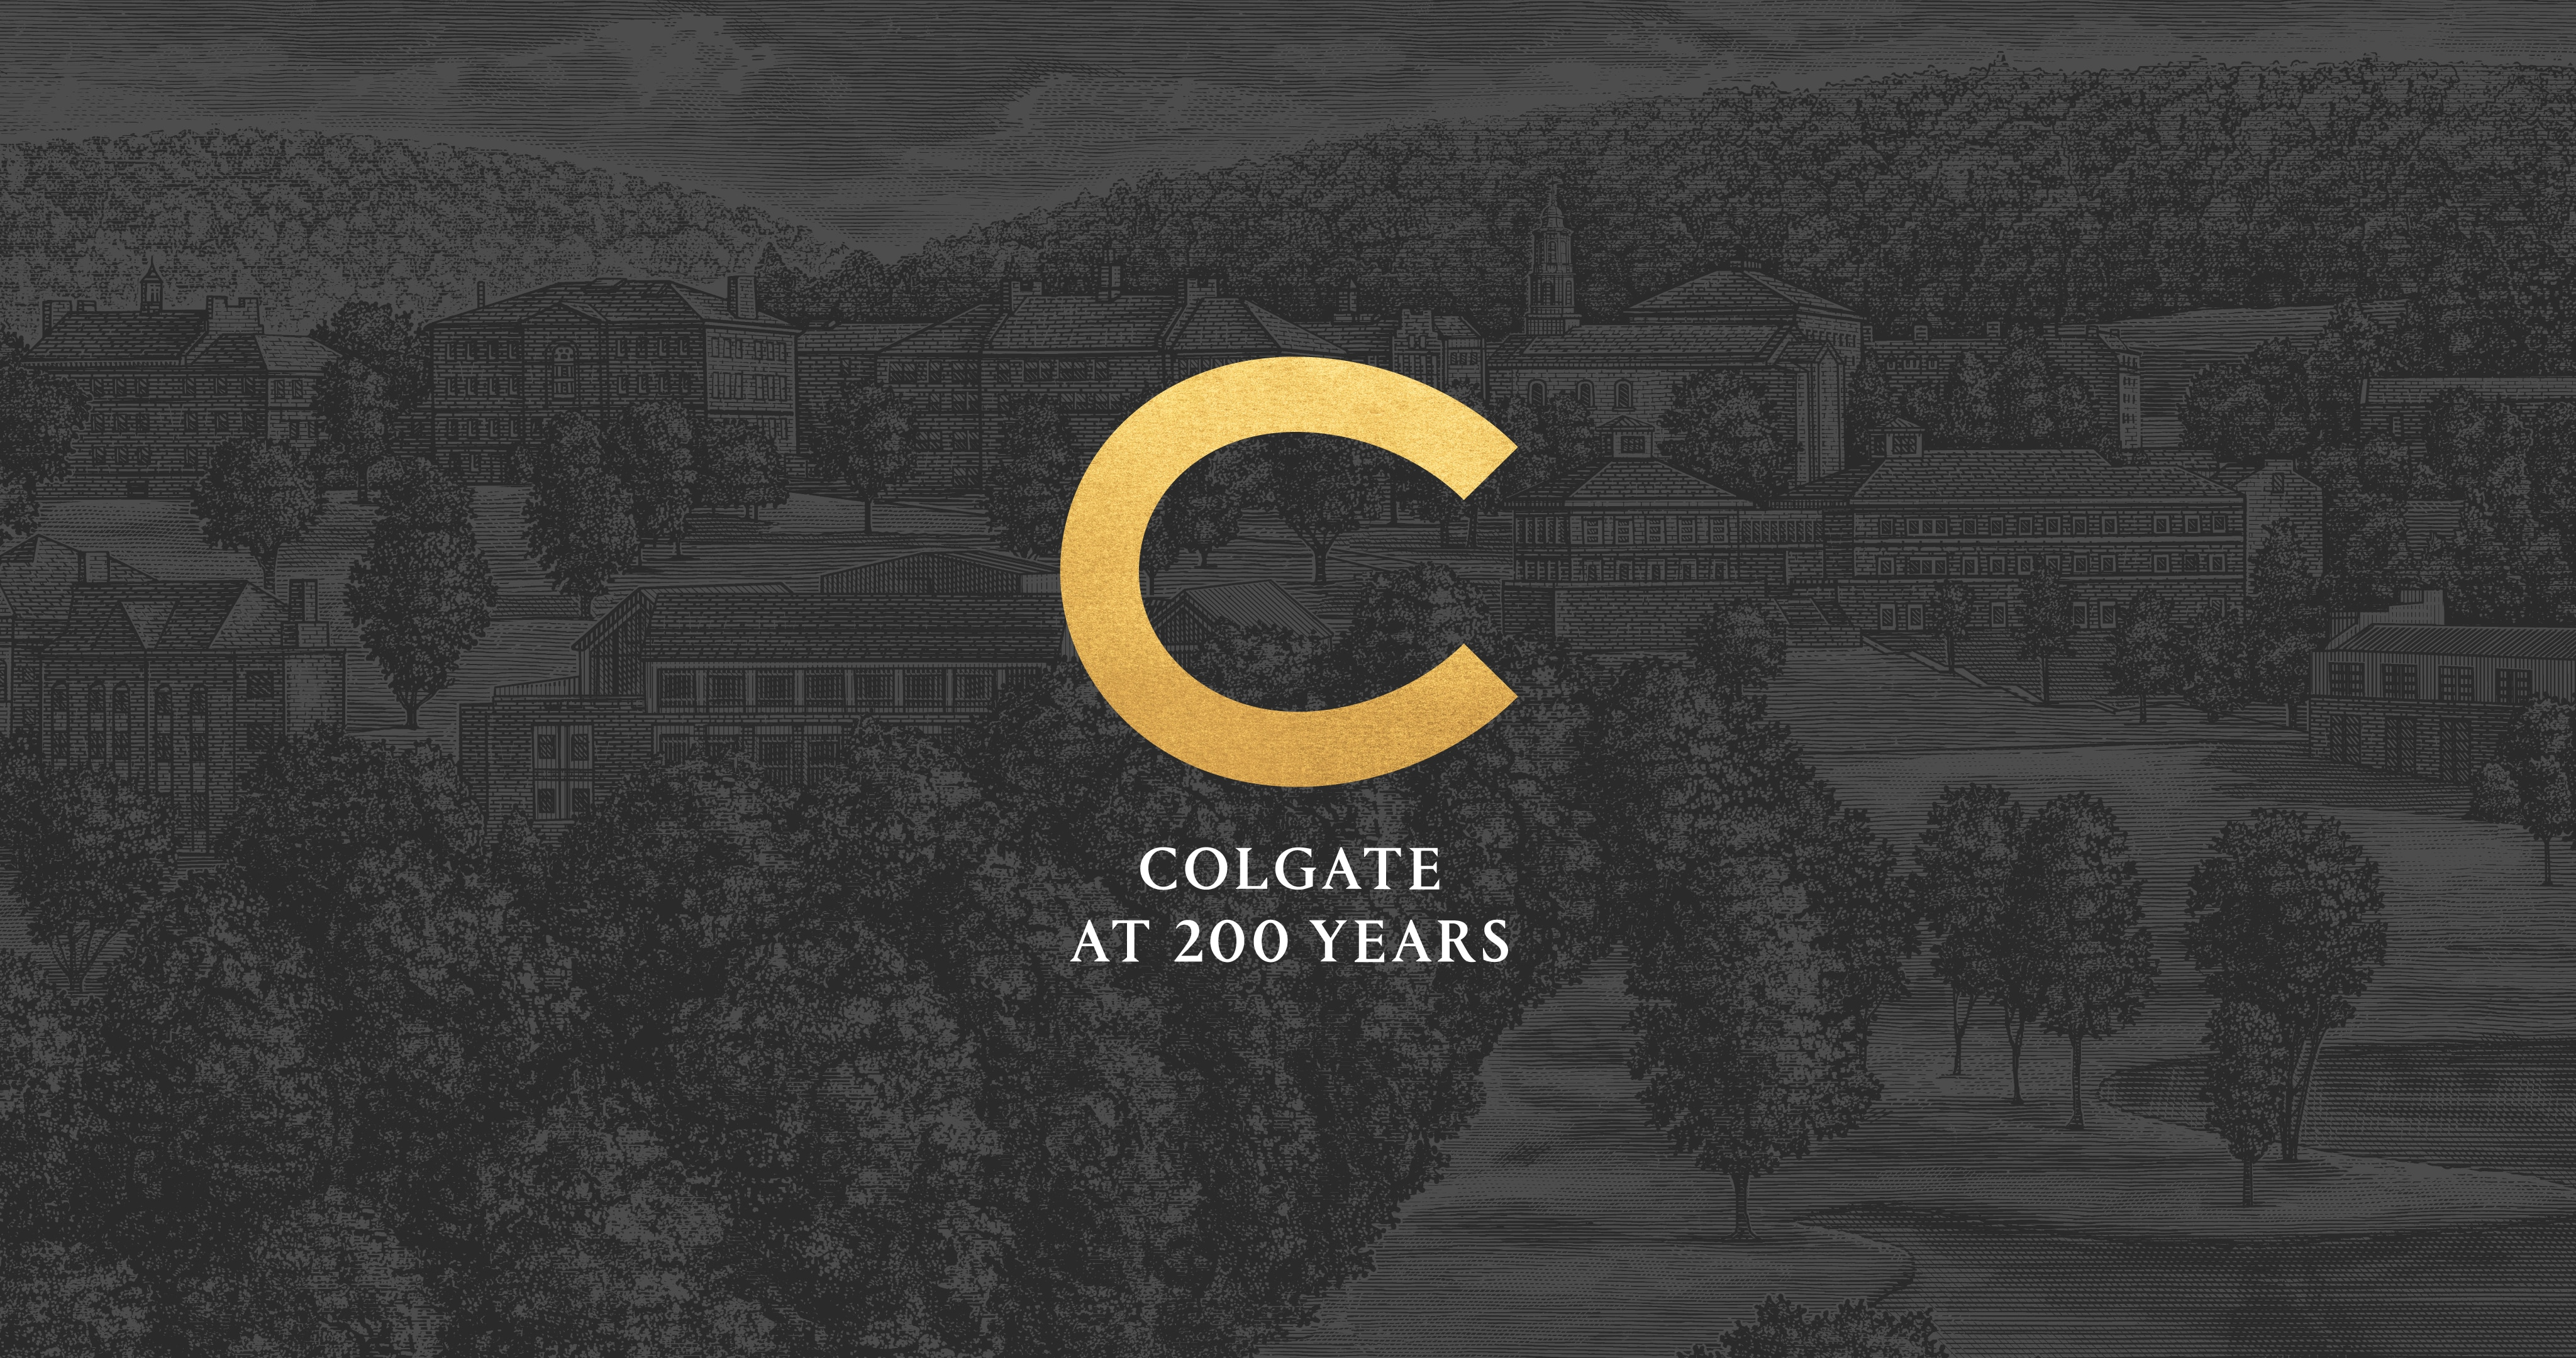 Colgate at 200 Years and logo over a dark-themed illustration of campus